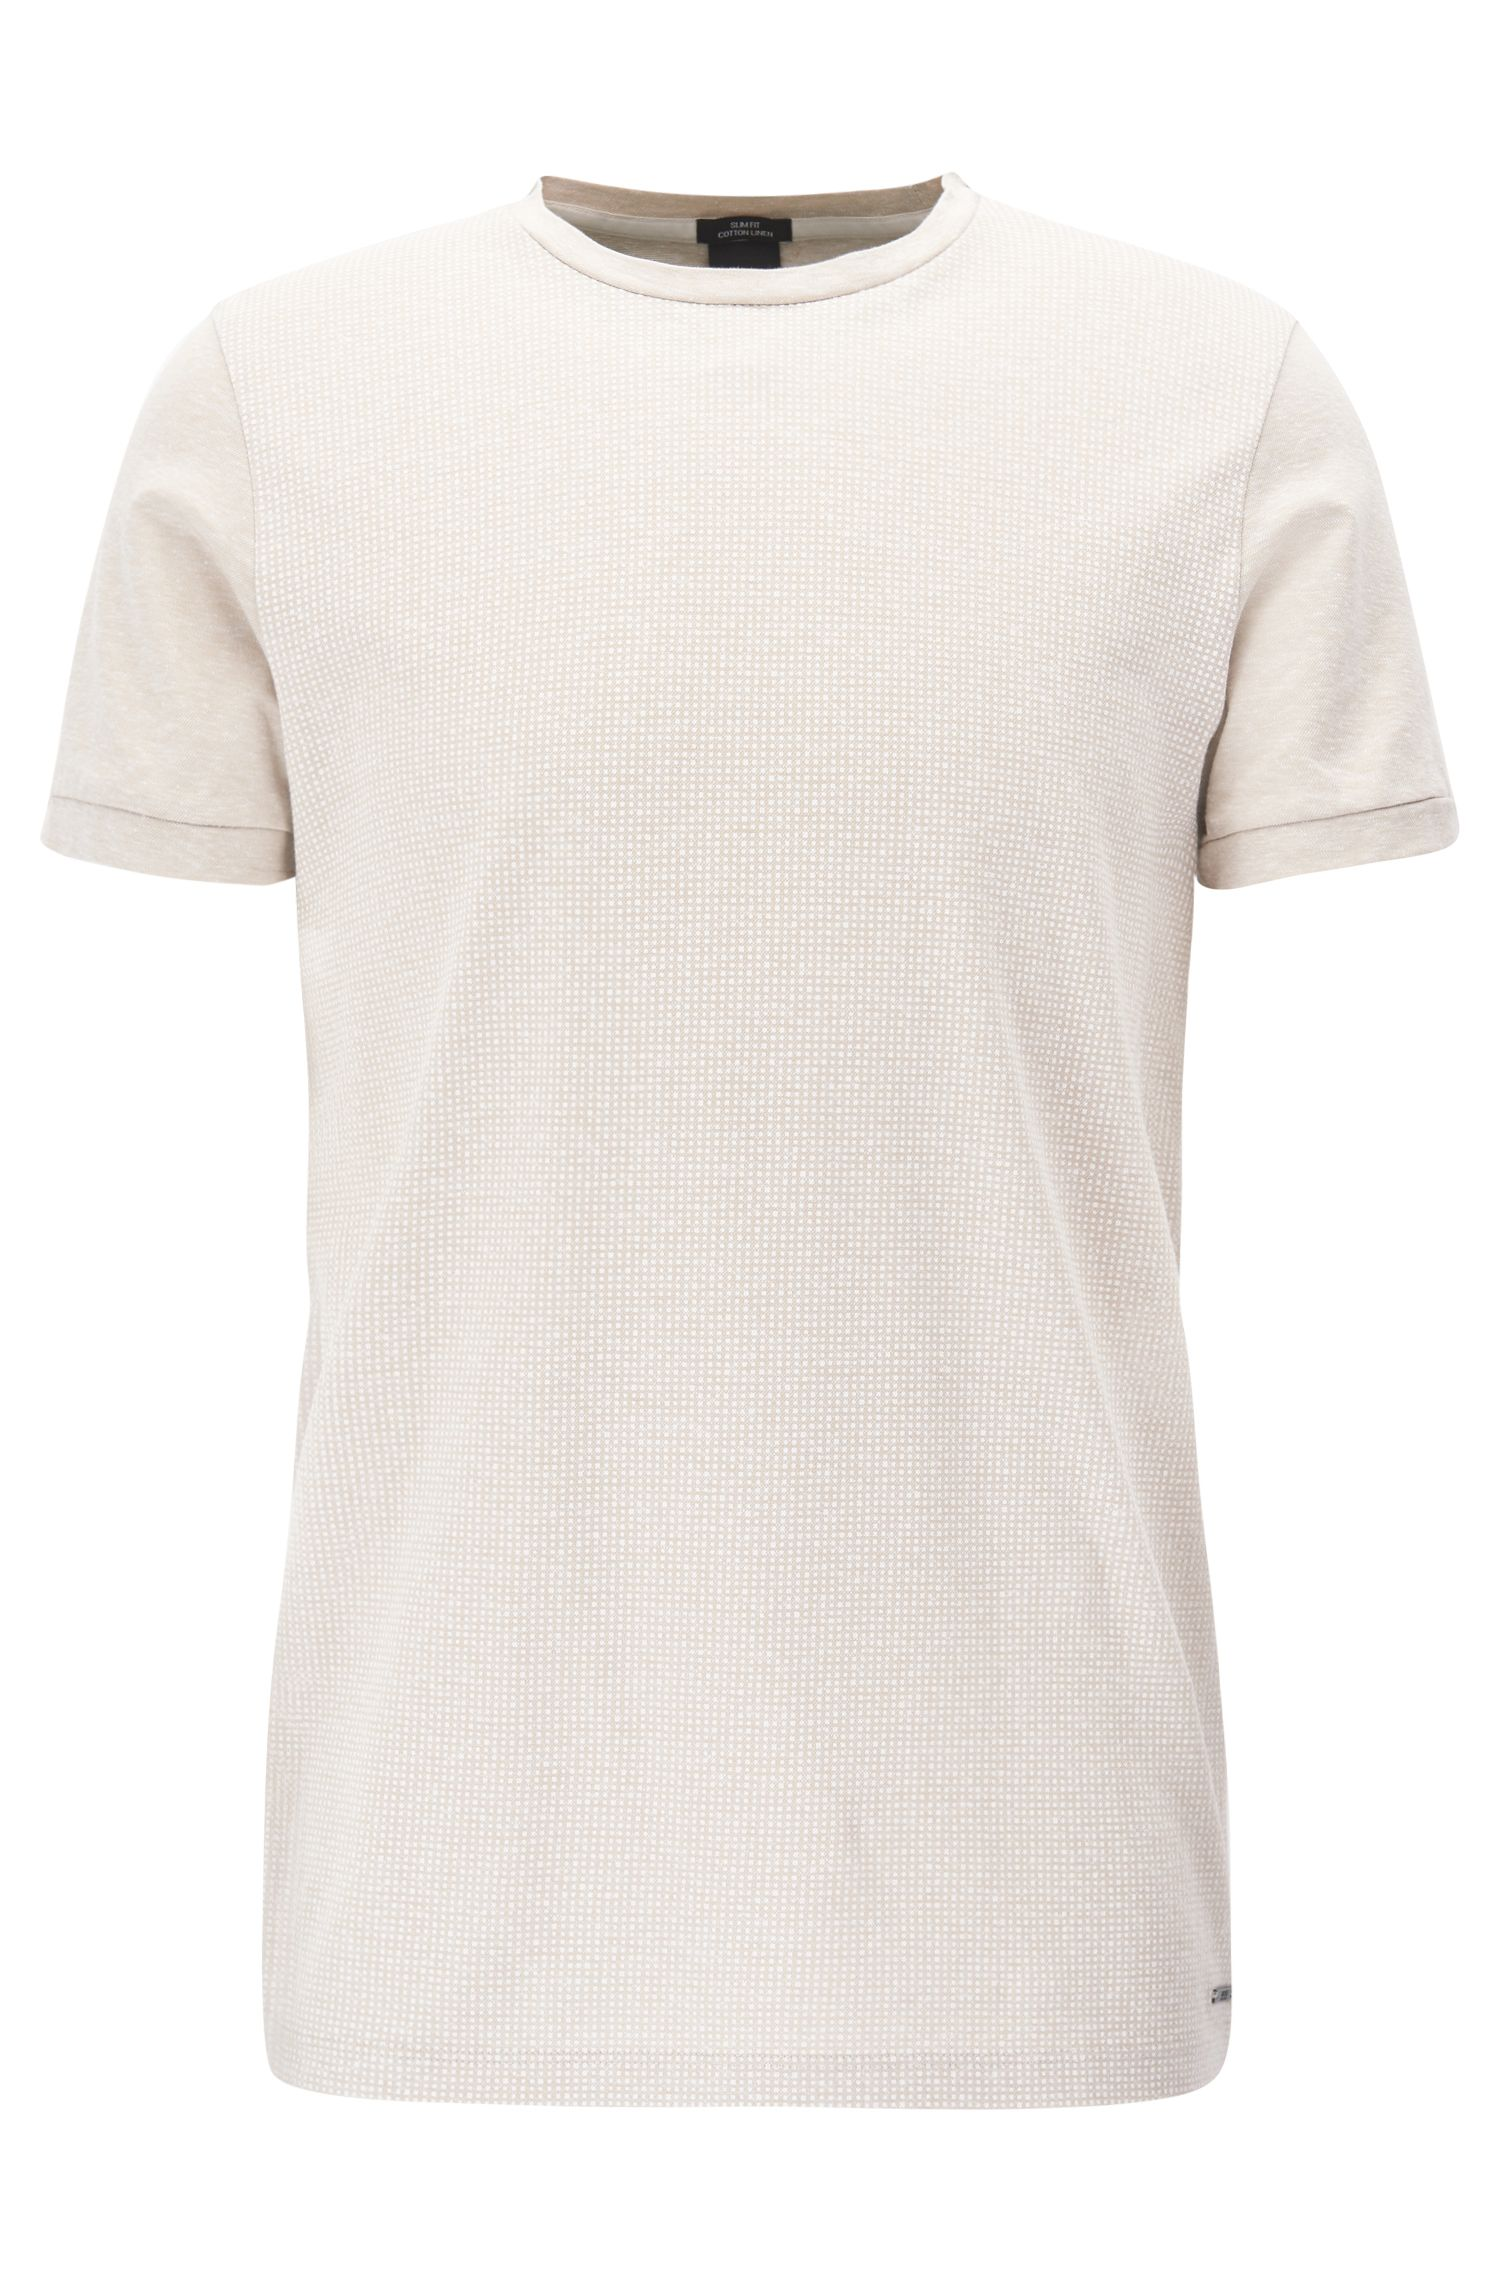 Cotton Linen T-Shirt | Tessler, Natural